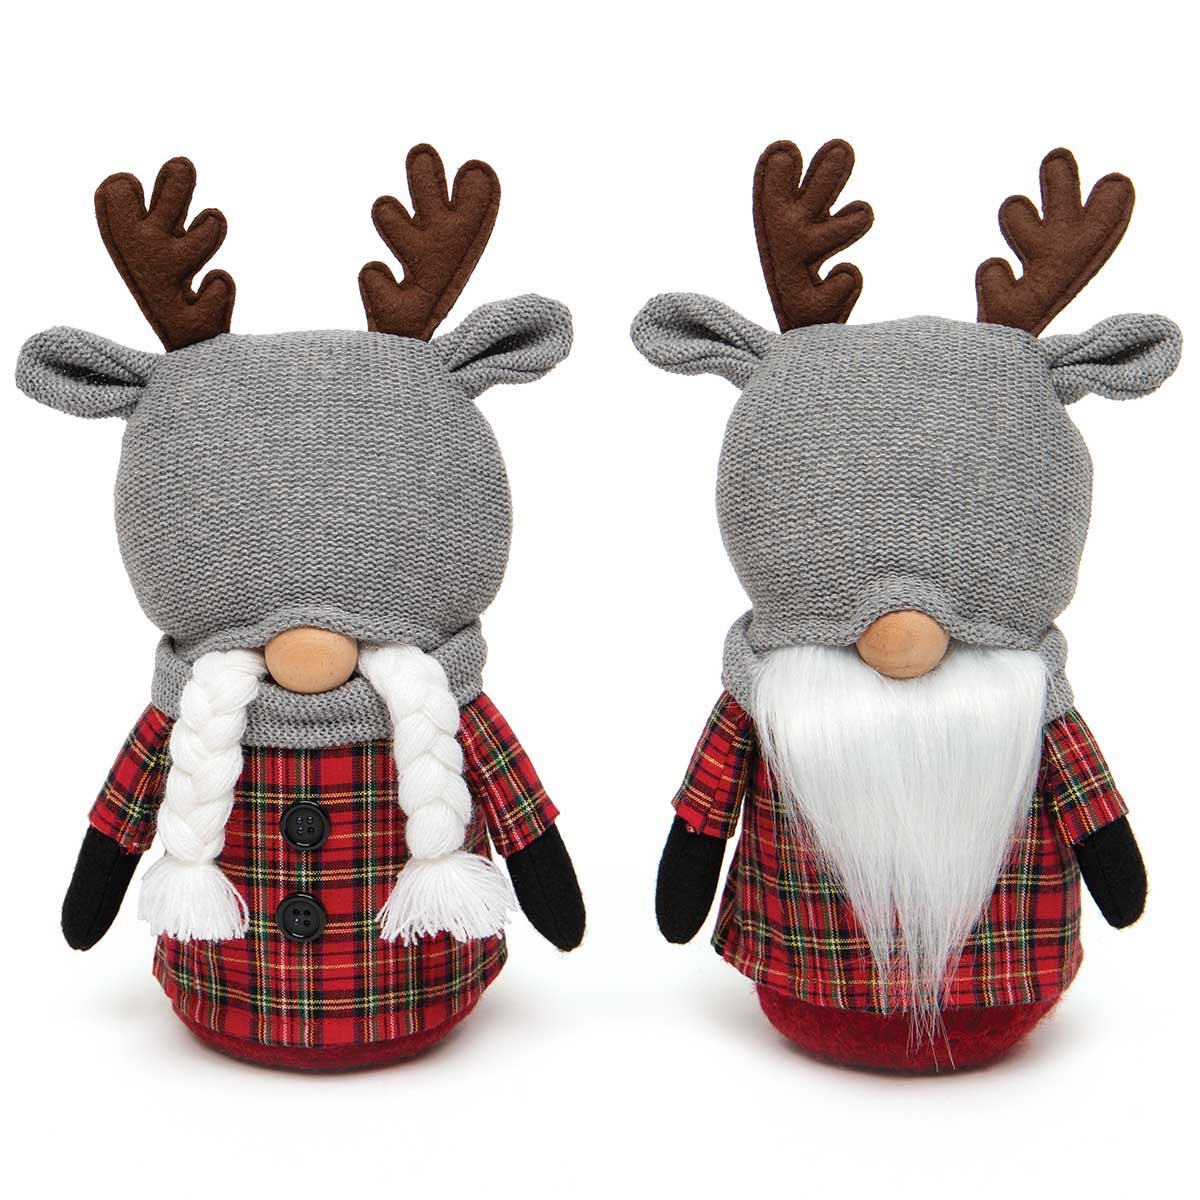 OH DEER GNOME COUPLE RED PLAID WITH REINDEER HAT, WOOD